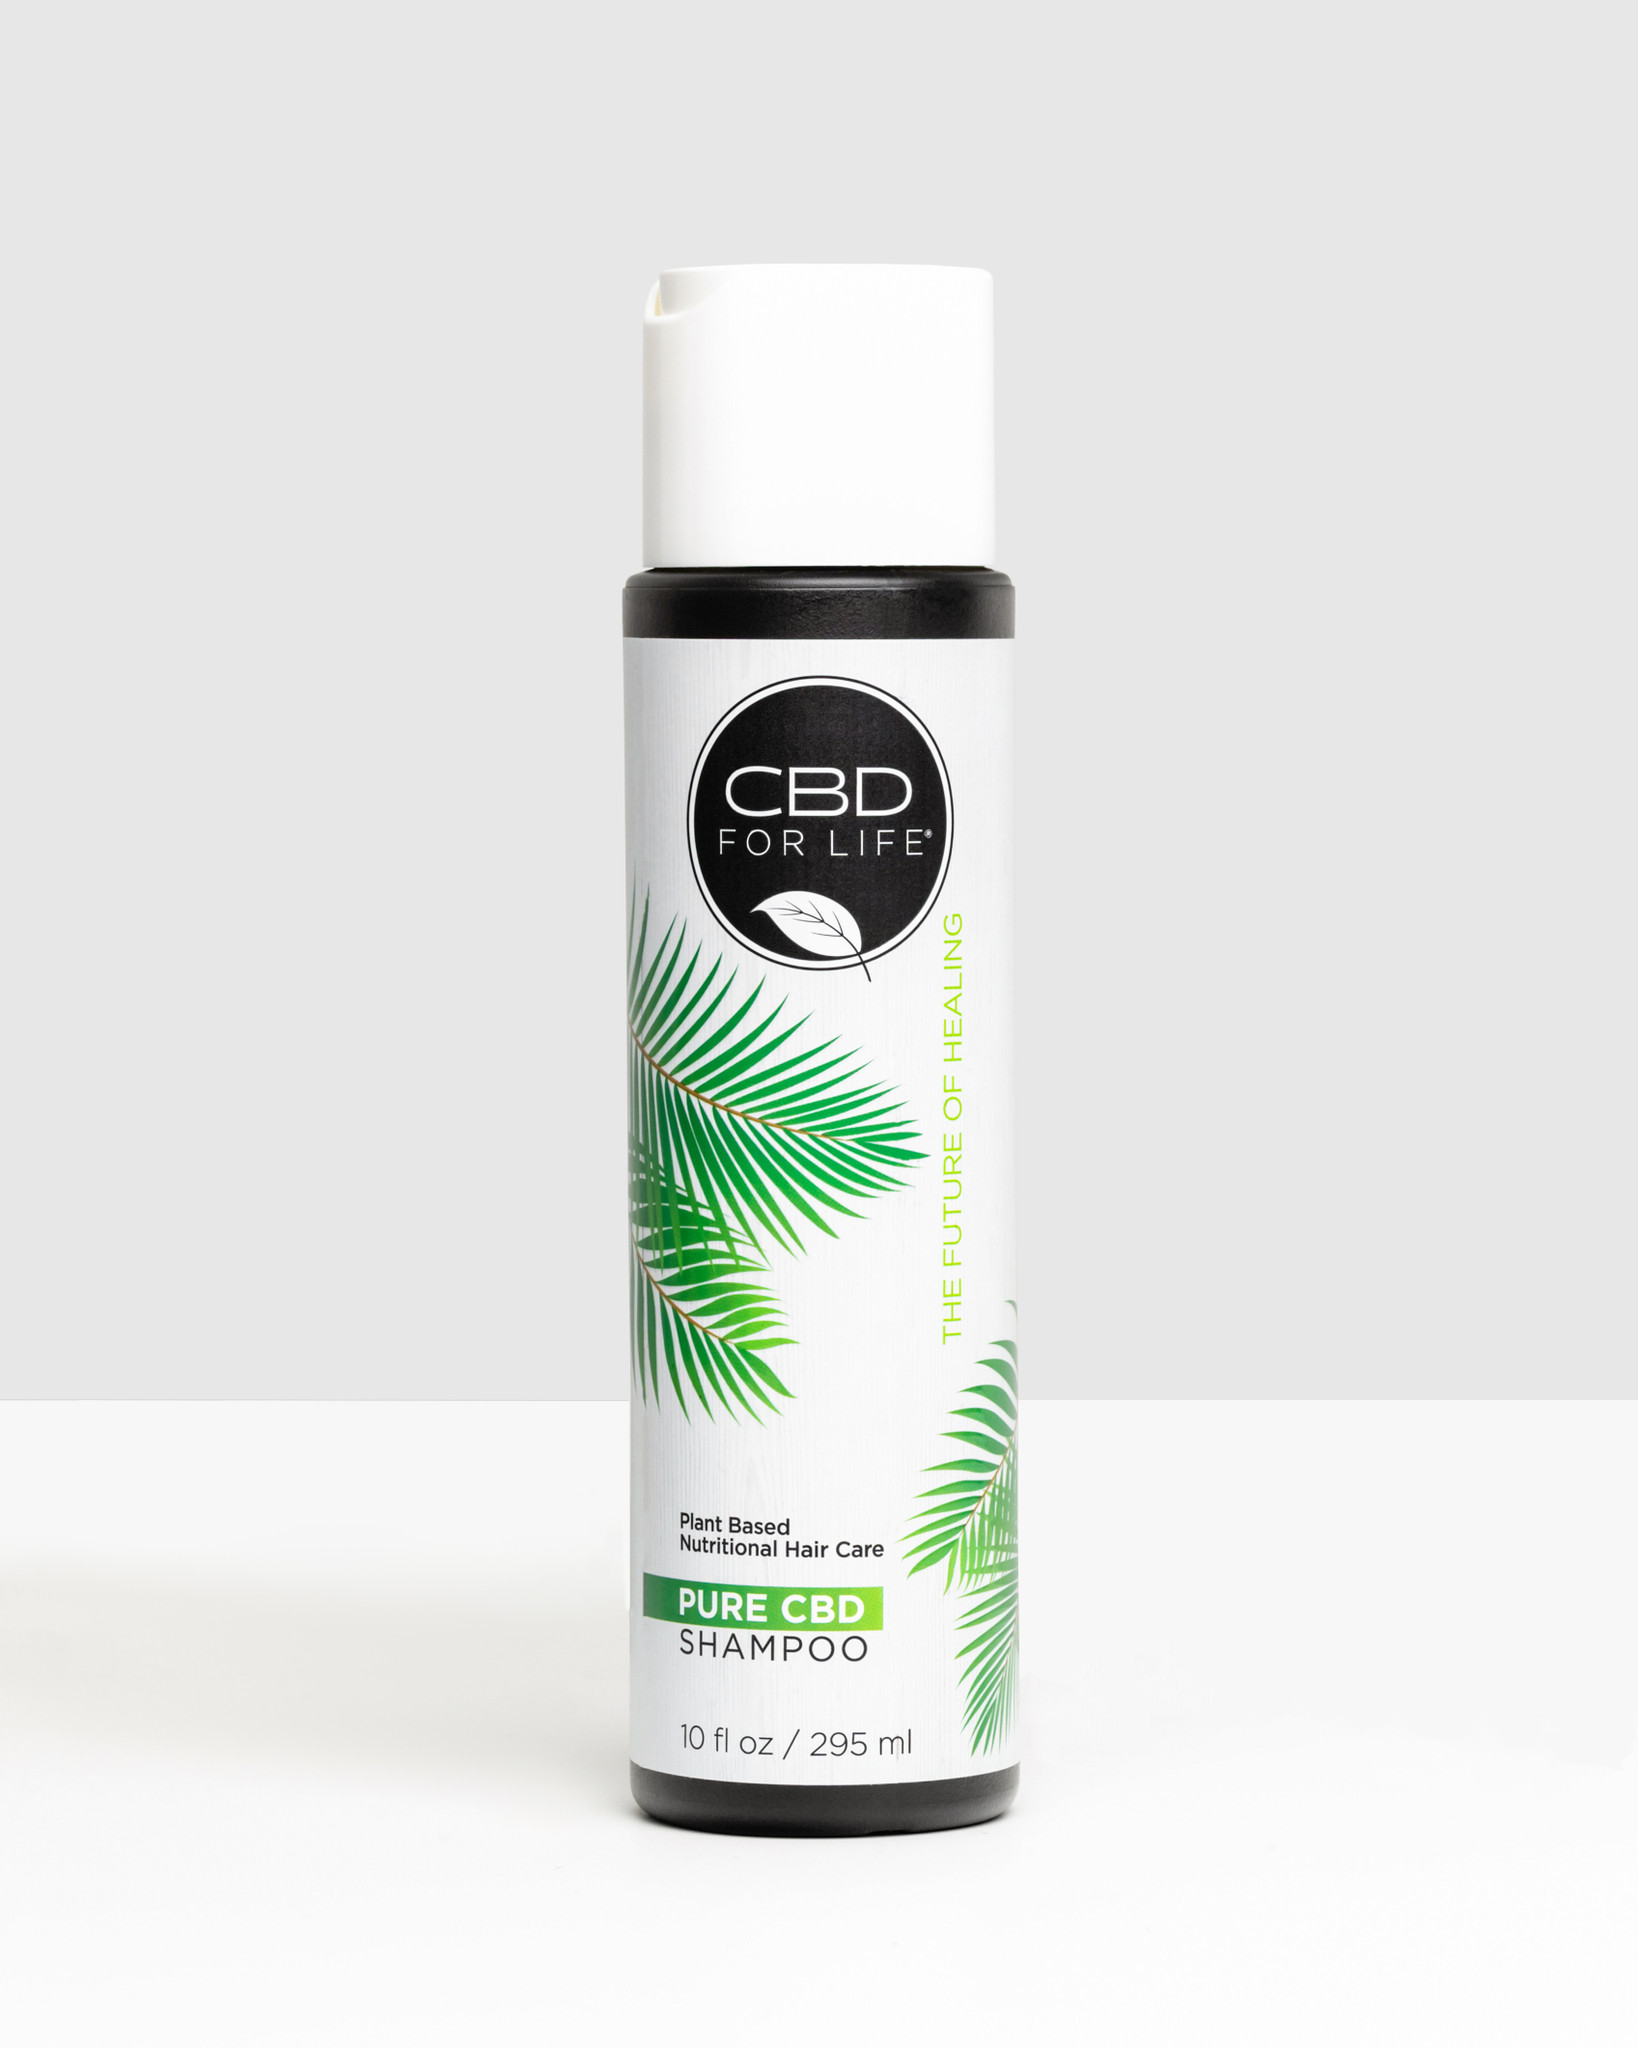 CBD For Life Shampoo & Conditioner Coupons